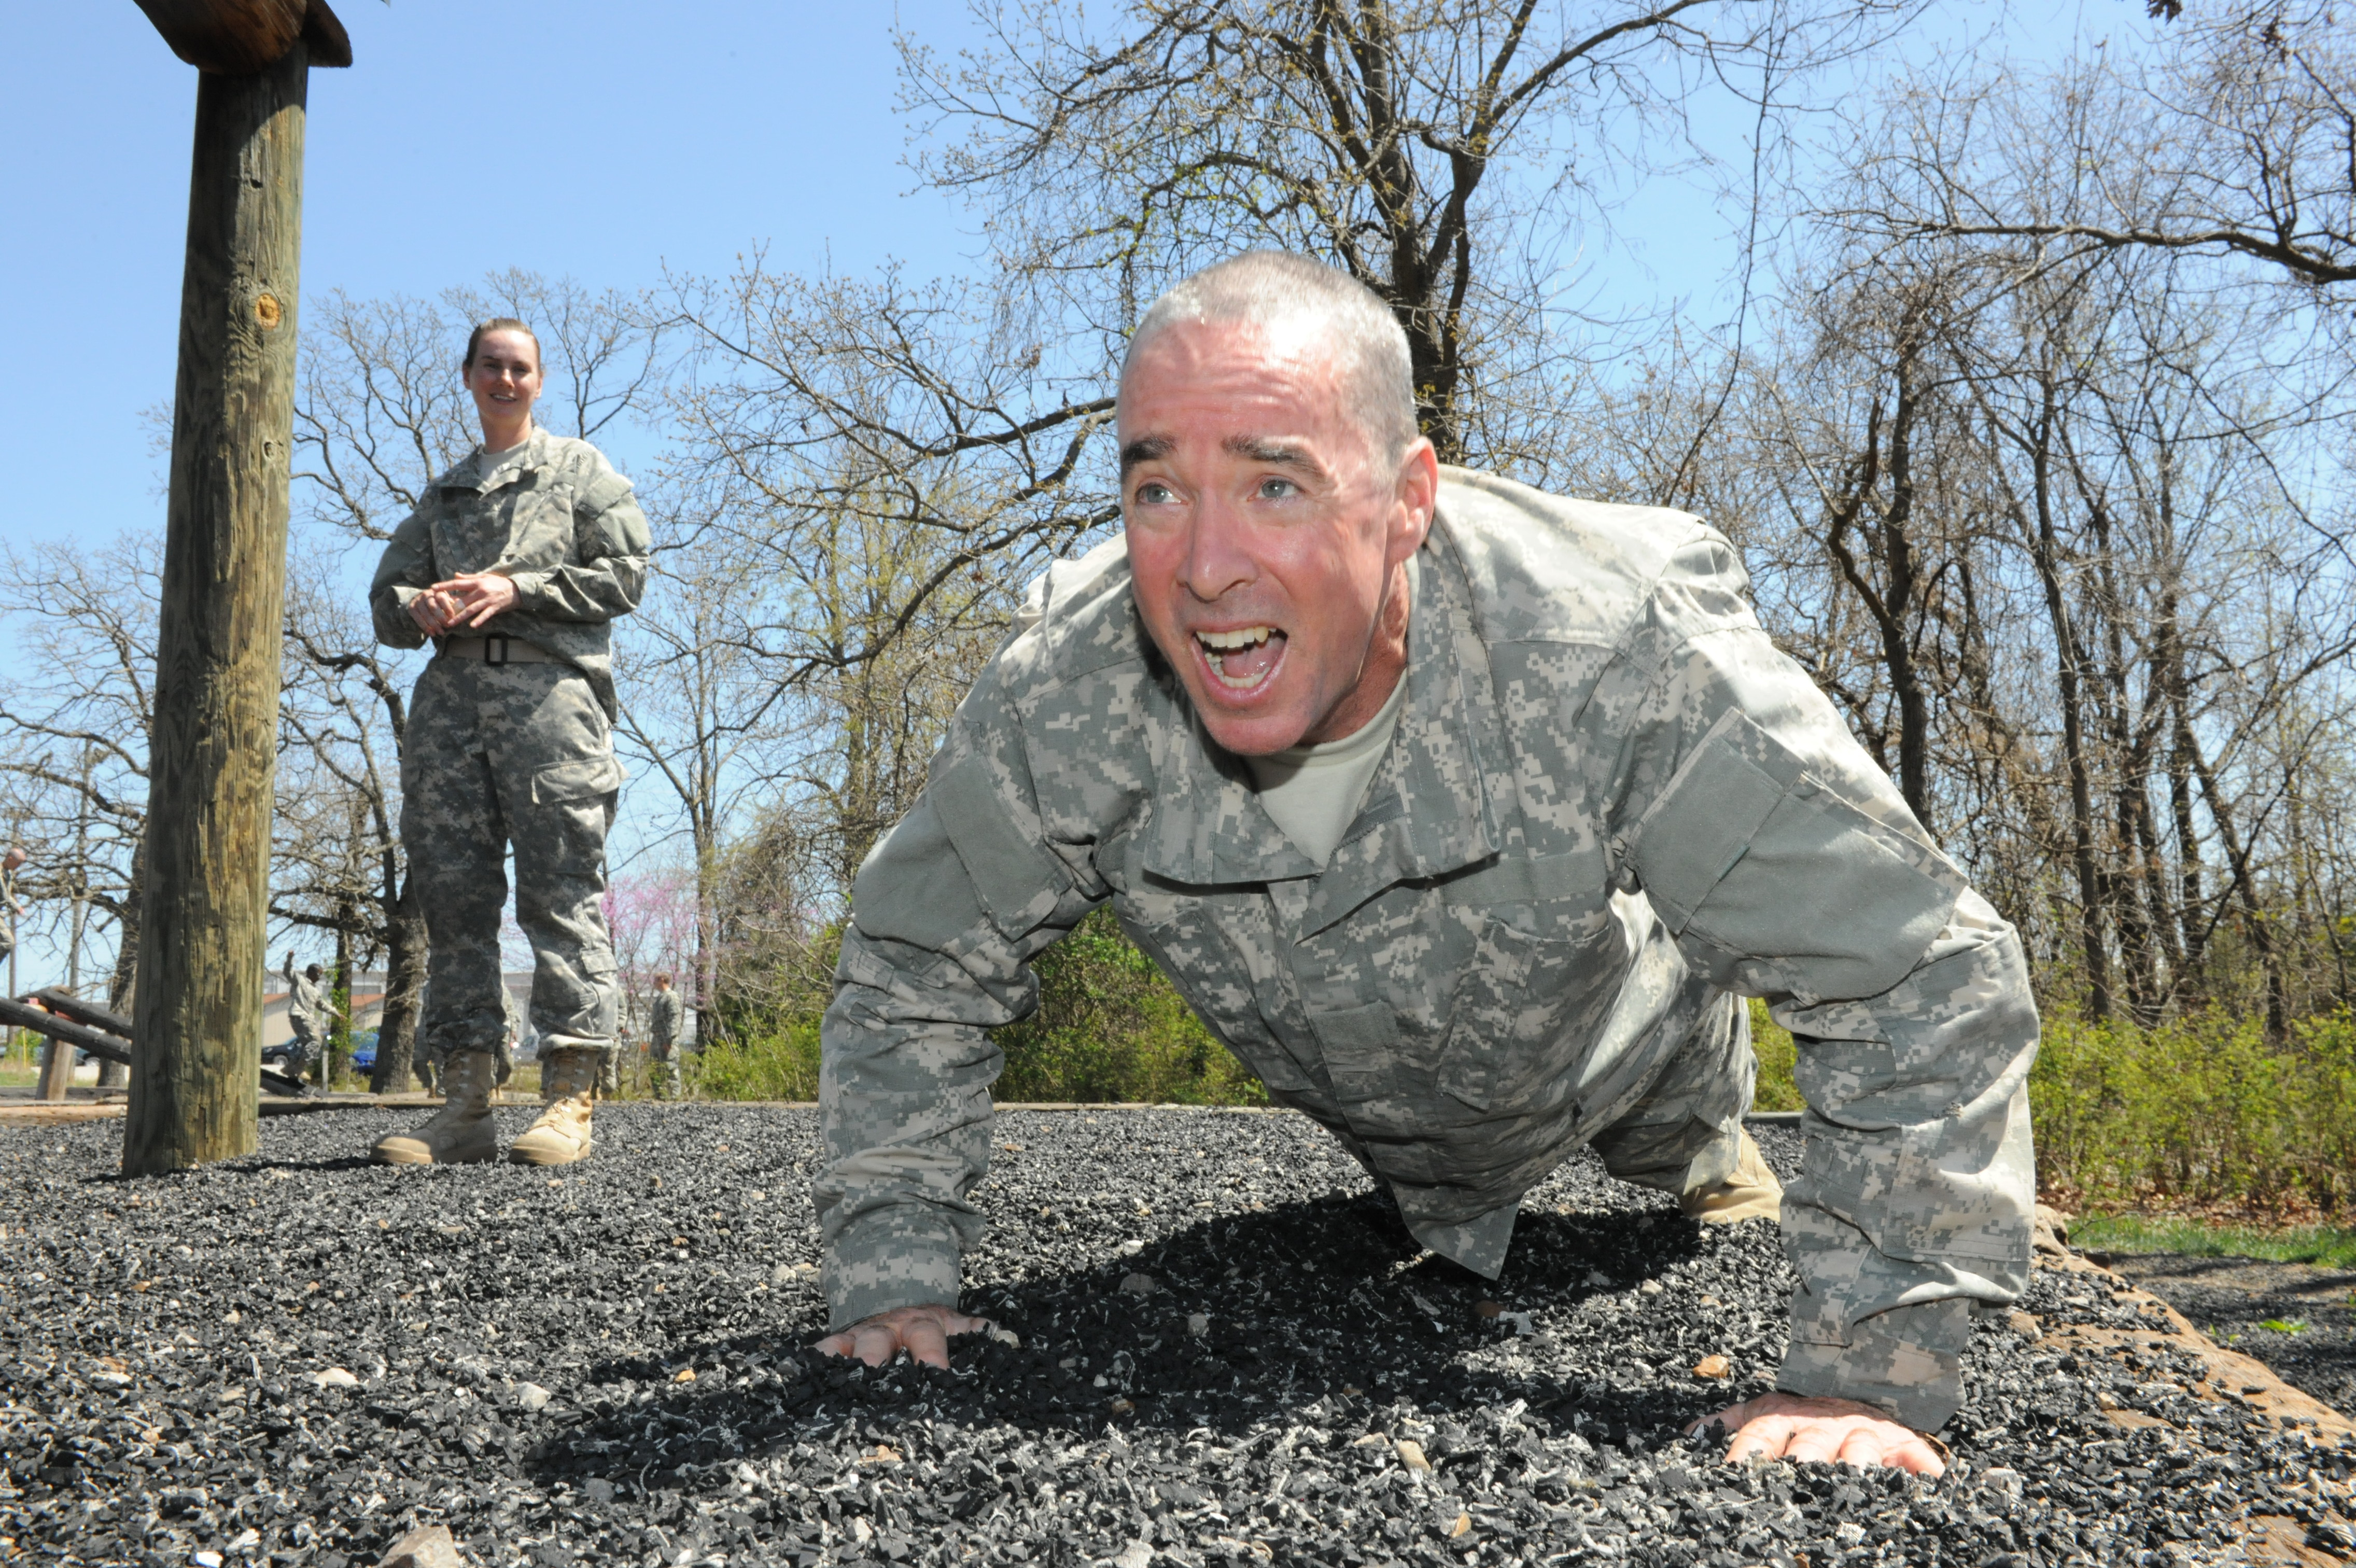 Sgt. 1st Class John Taffe of Alameda performs a crawl as part of an obstacle course at Fort Leonard Wood, Mo.